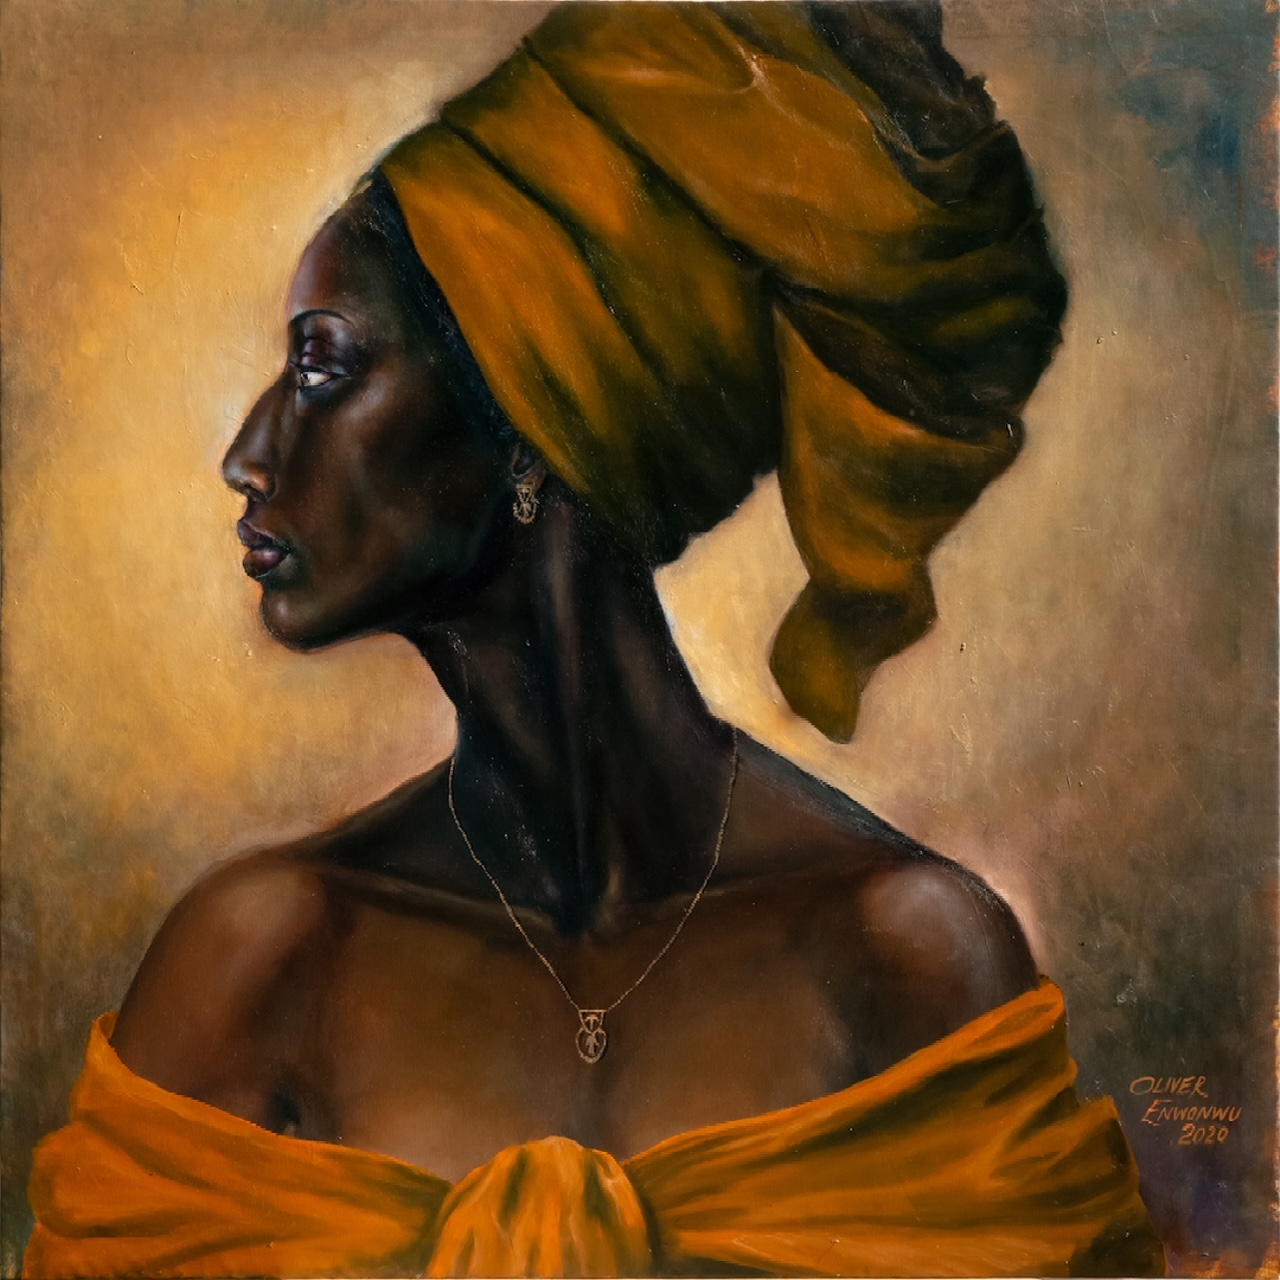 Ebony(from the Black and Proud series), 2020, oil on canvas, 62.5 x 62.5cm